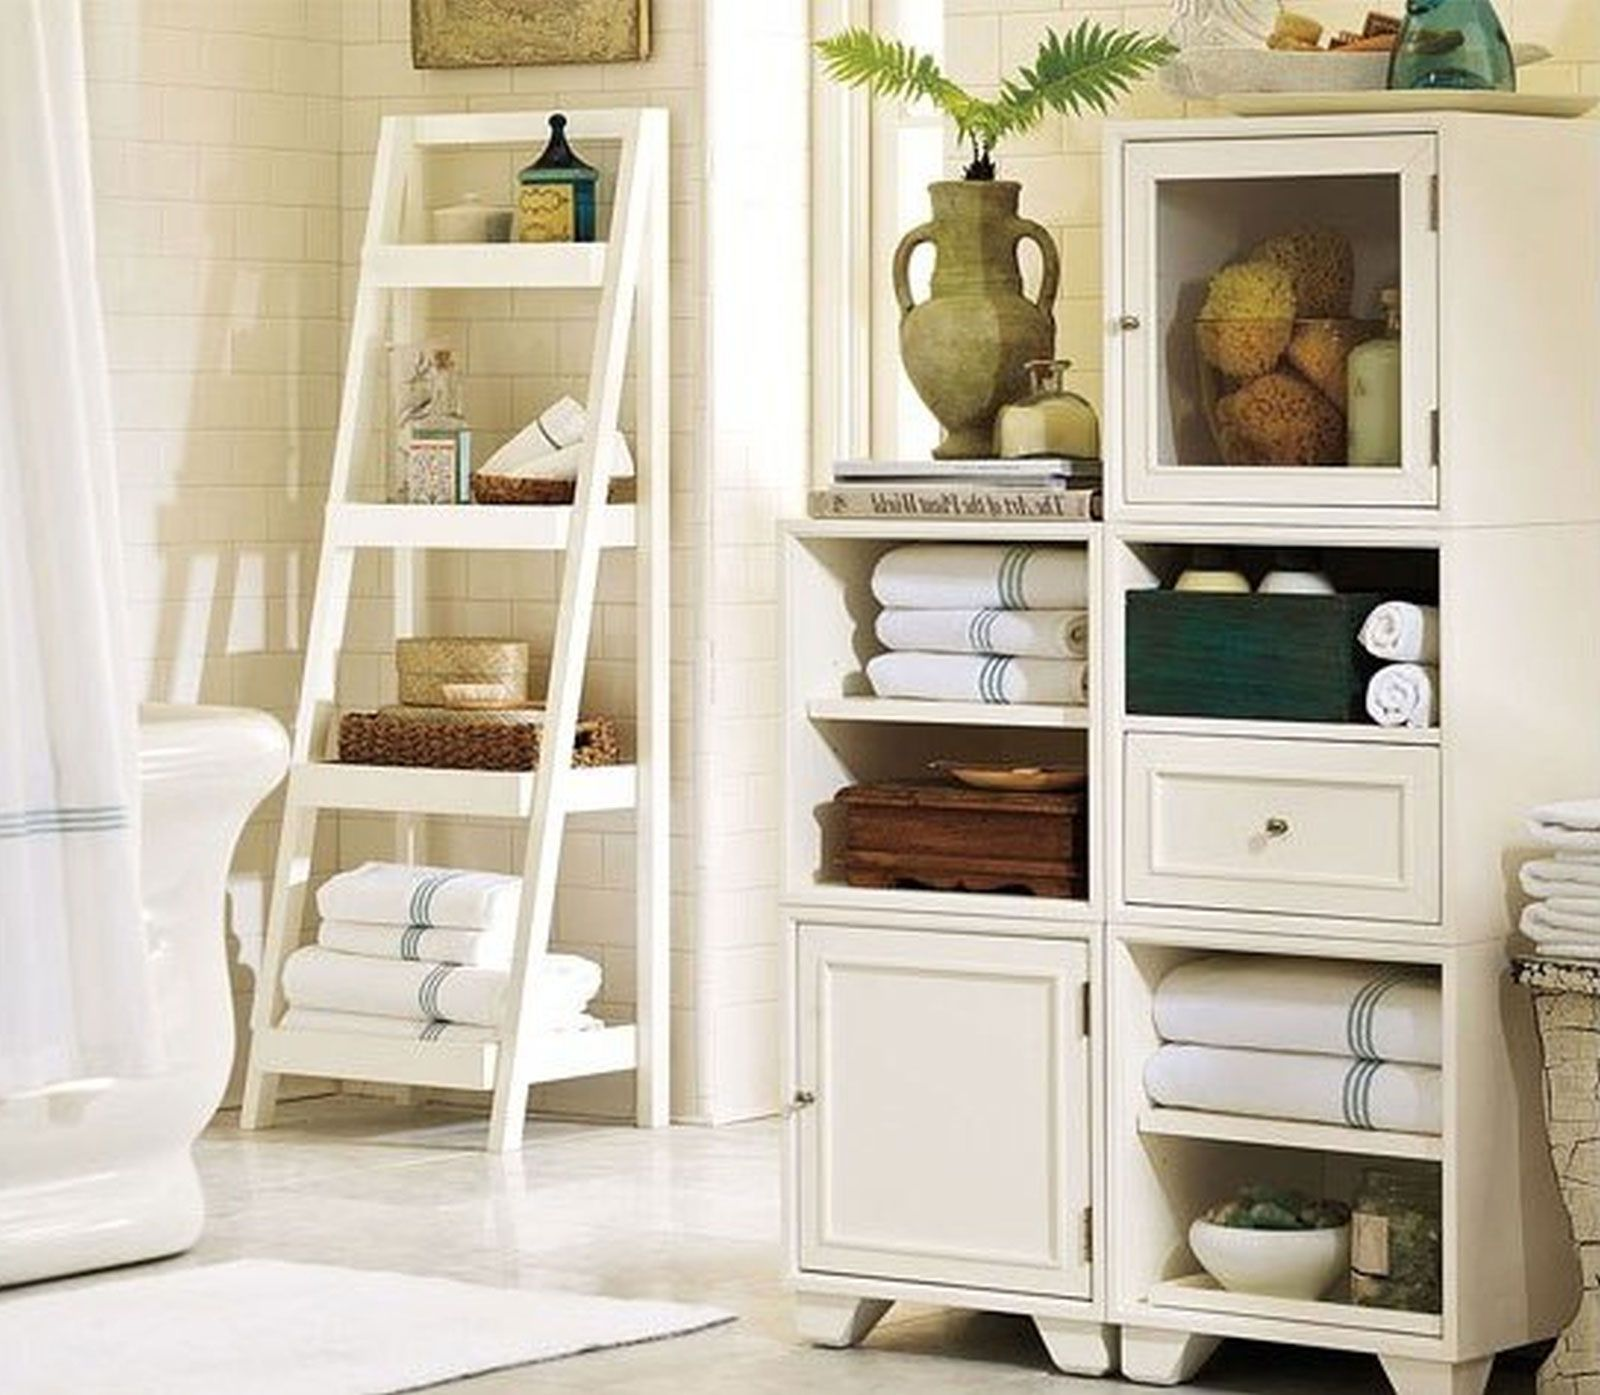 Another Storage Idea For Large Wall In Master Bath Bathroom - White bathroom towel shelf for small bathroom ideas